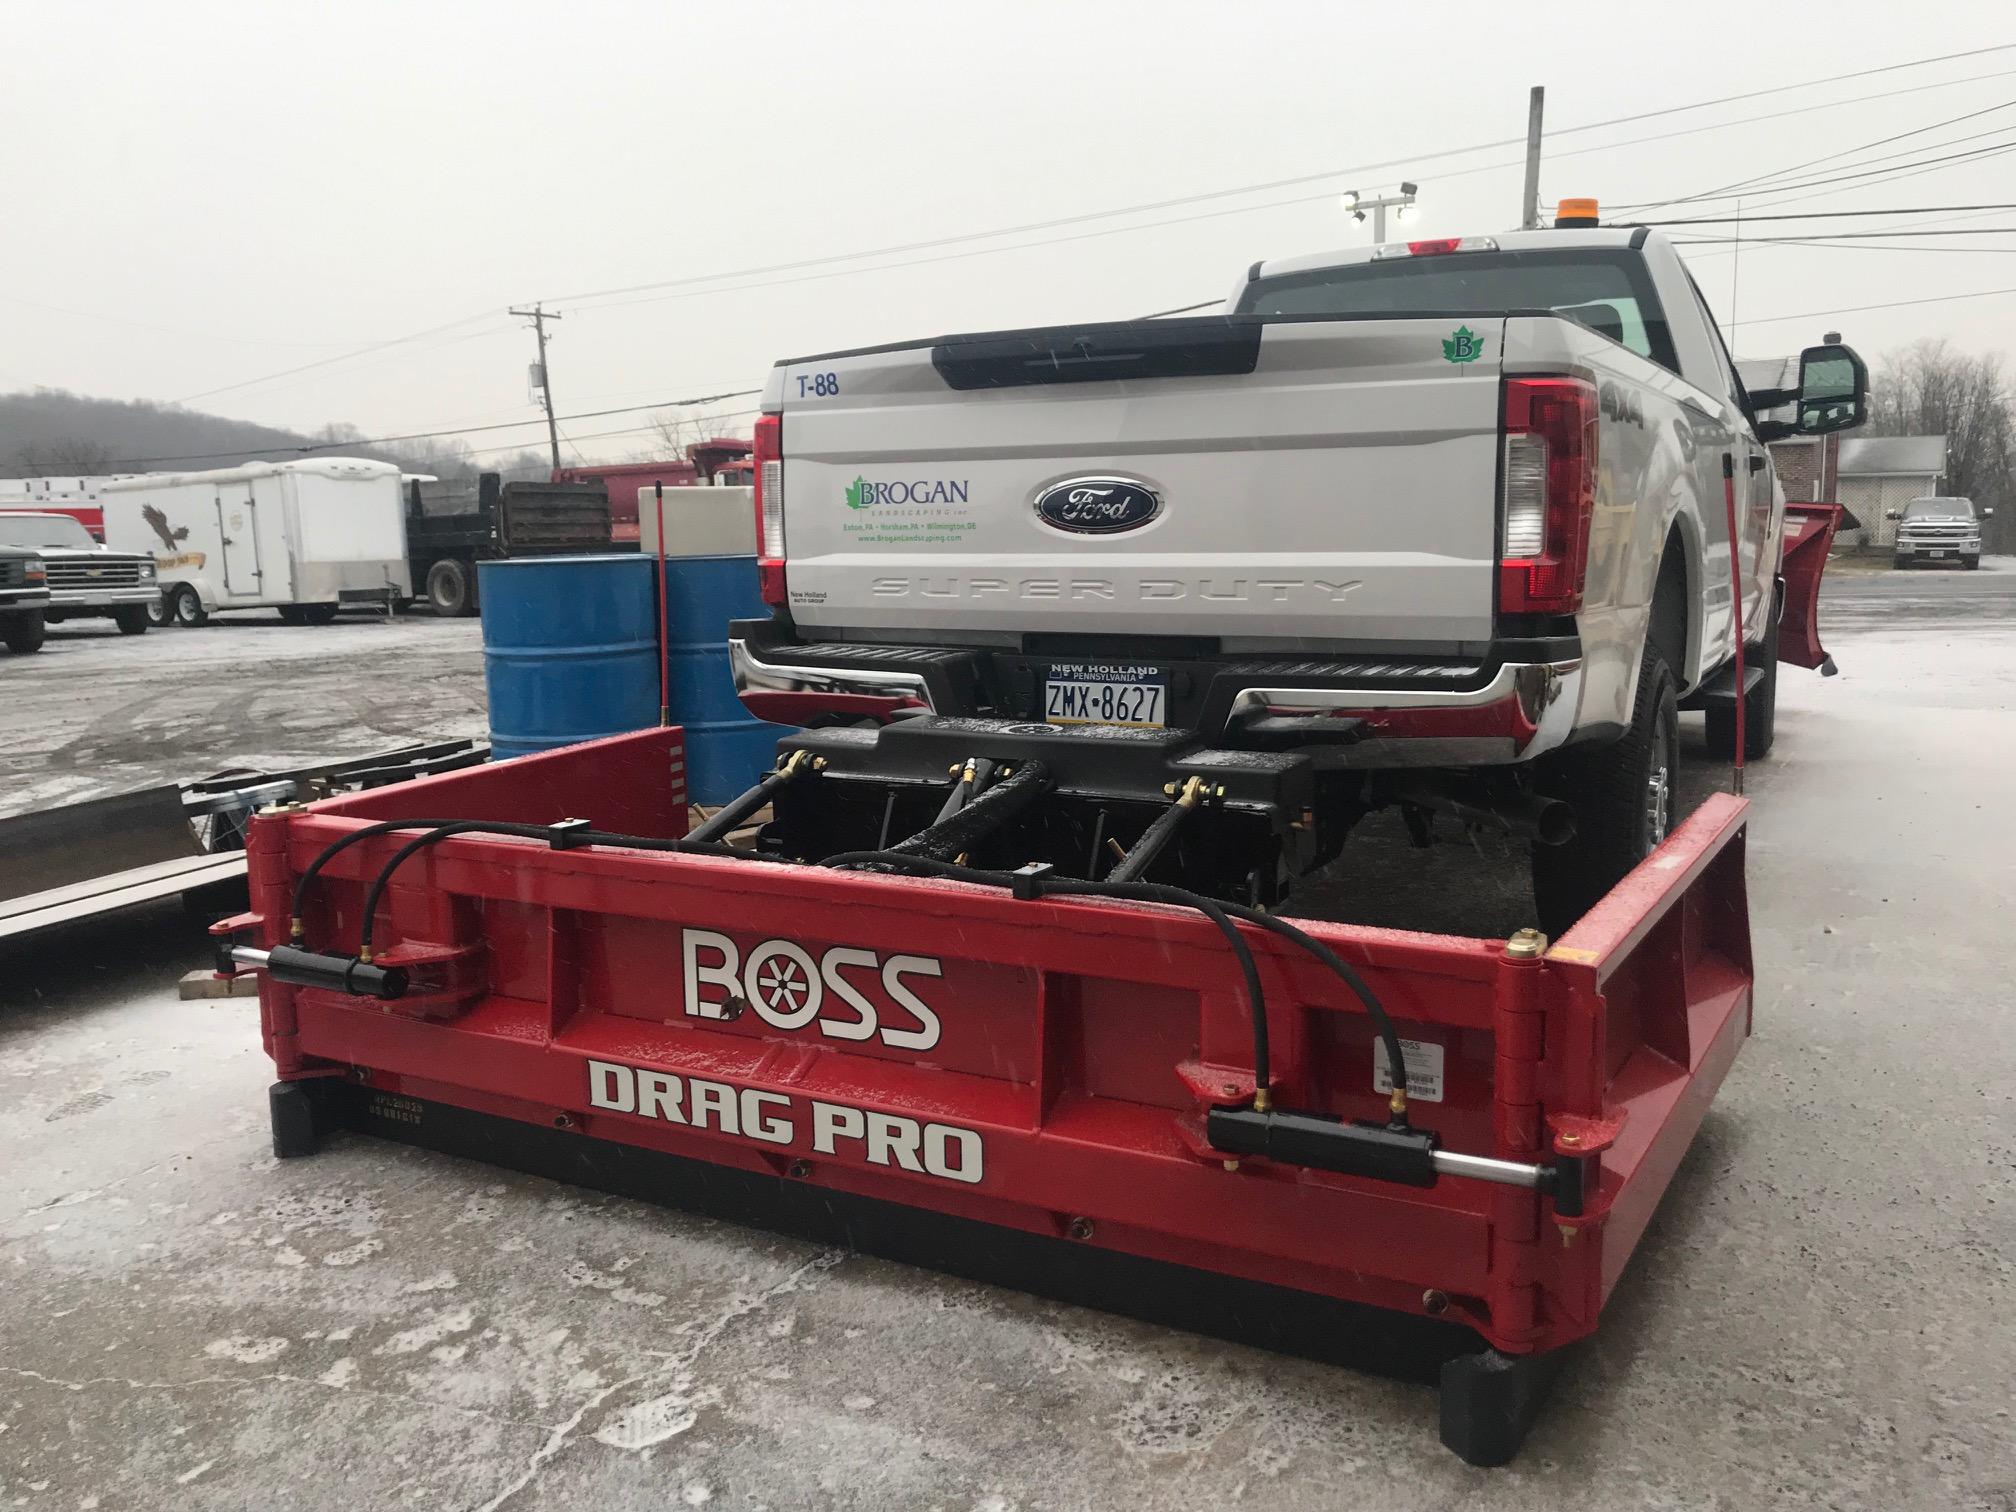 back of white pickup with red drag pro